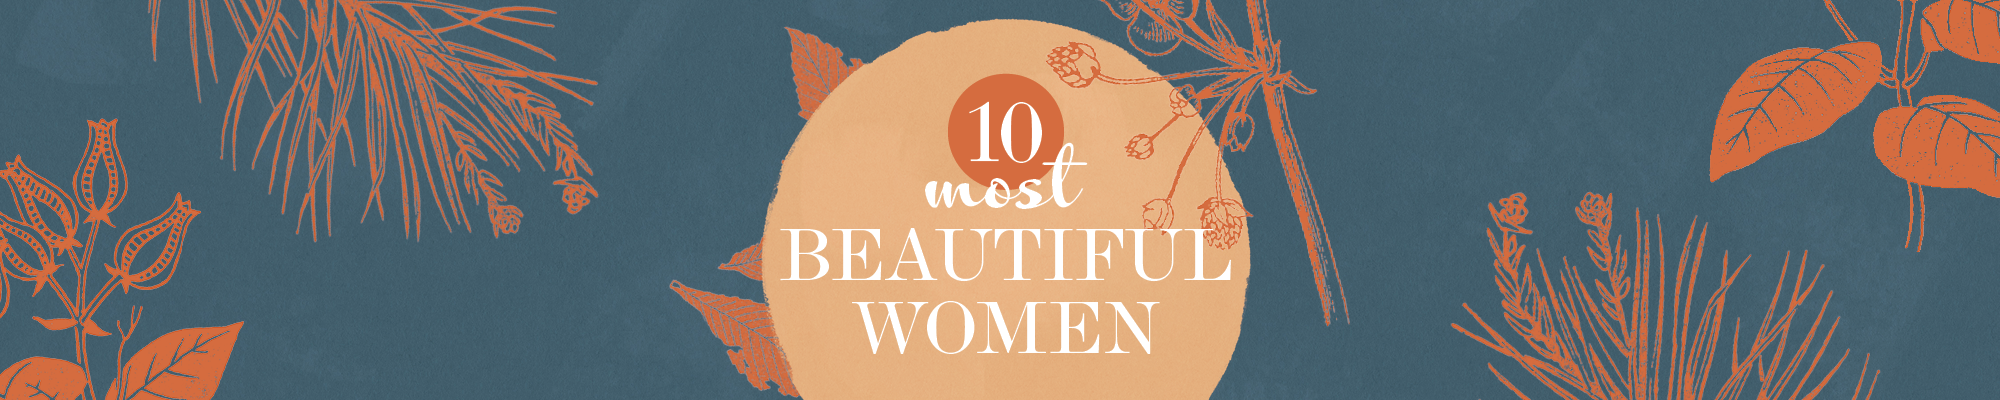 10 Most Beautiful Women 2019